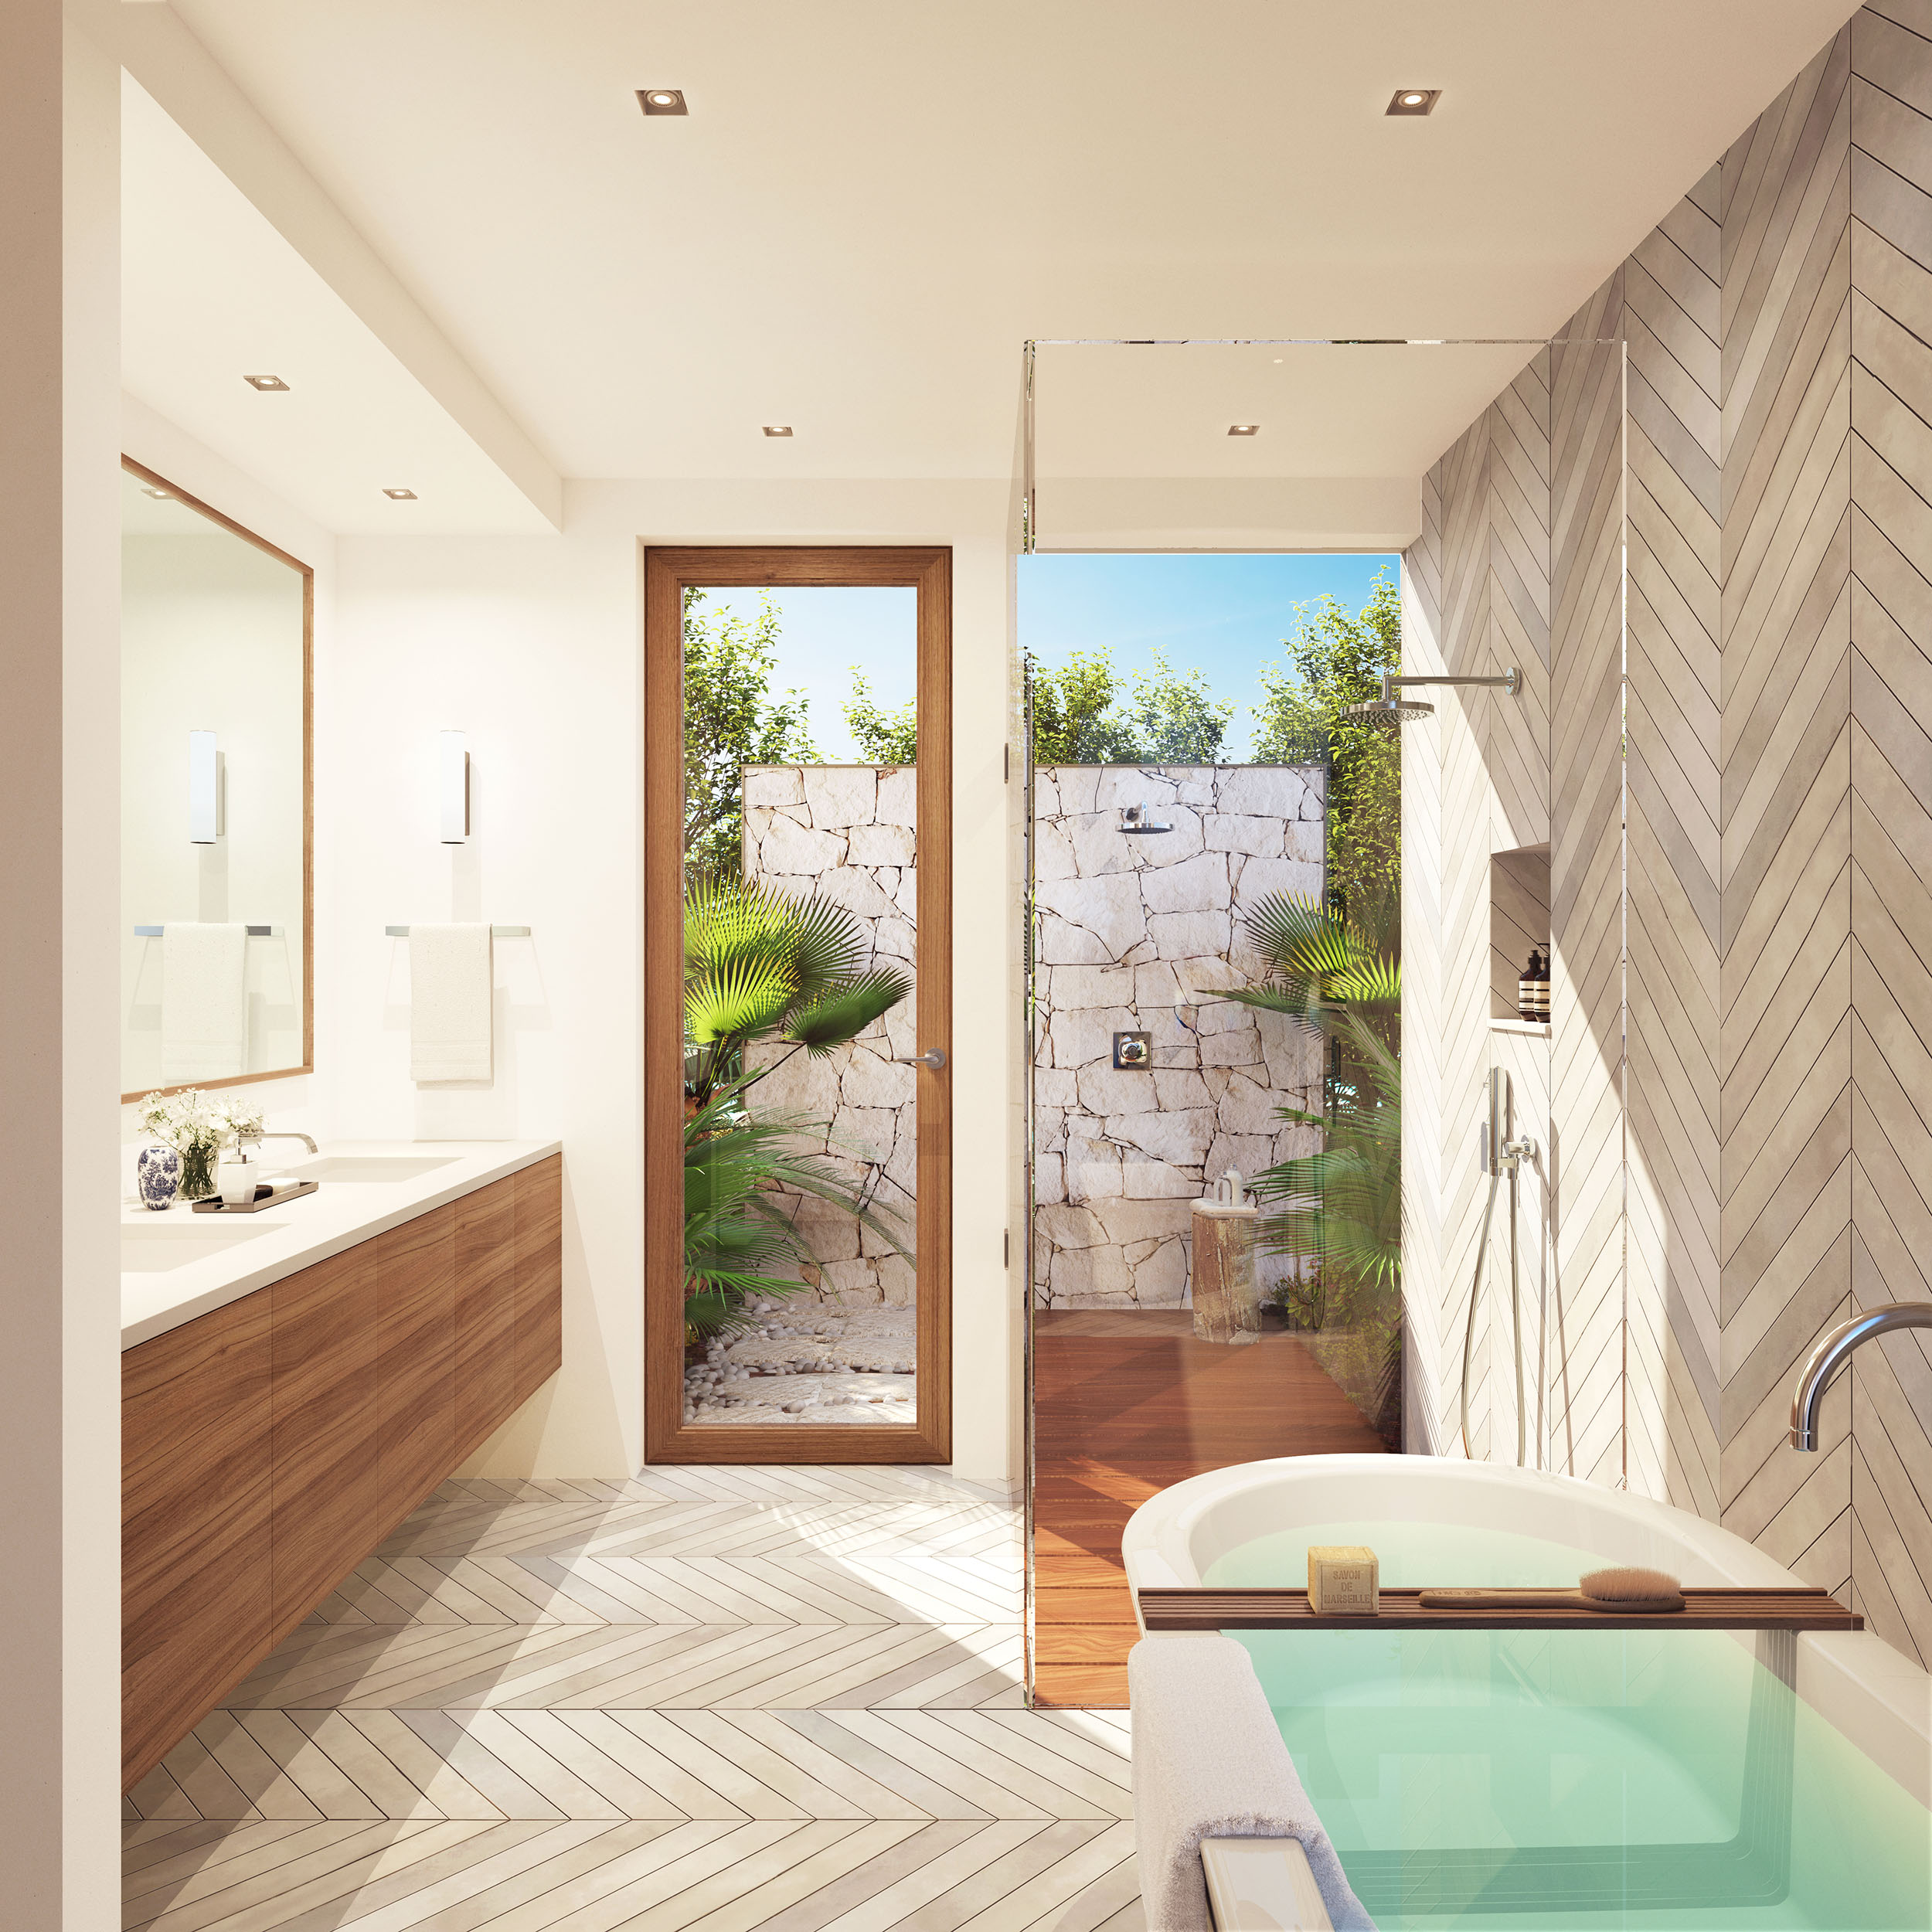 Rock House - rendered view of the bathroom, with external shower area